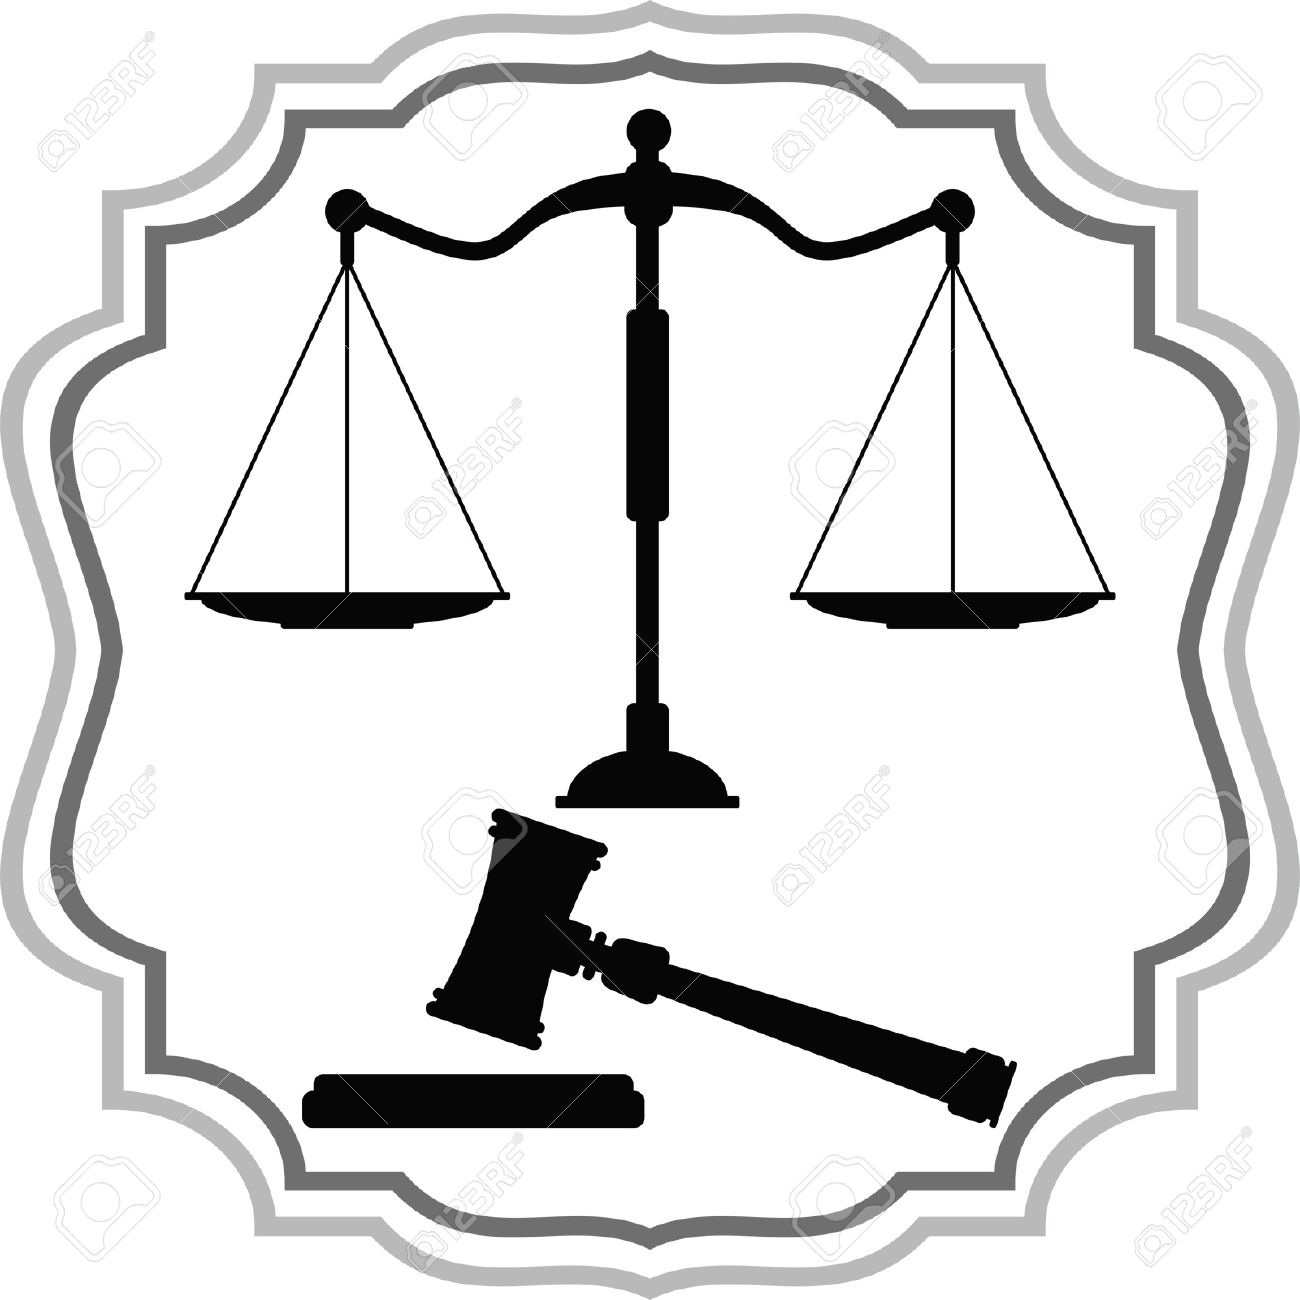 Symbols Of Justice Scales And Hammer Royalty Free Cliparts